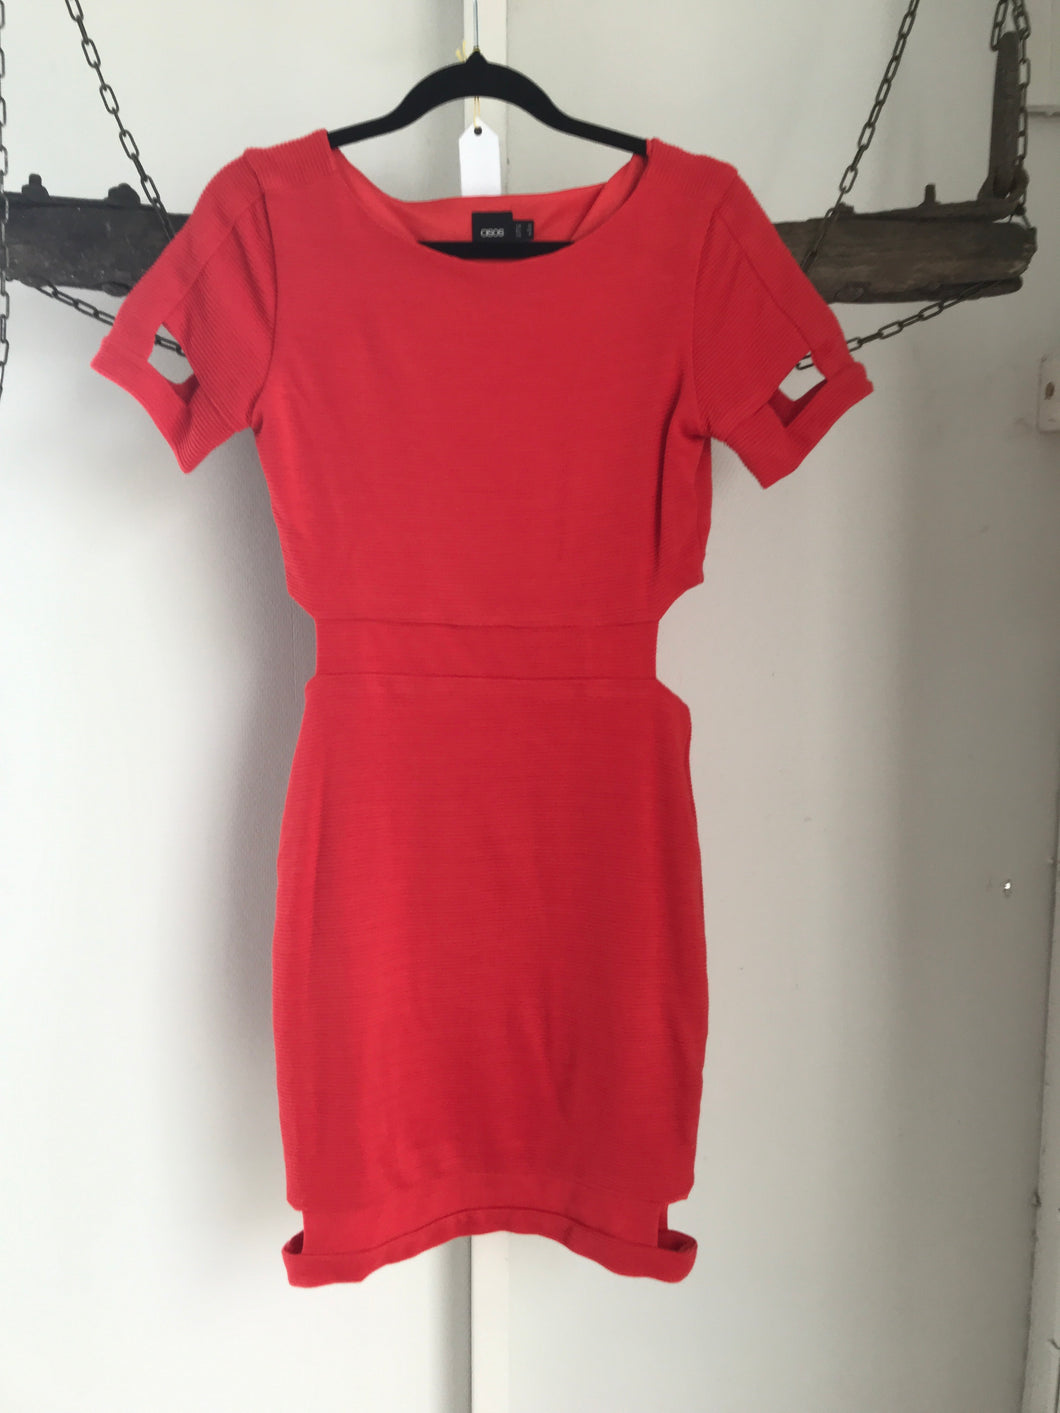 ASOS Red Hole Dress Size 10